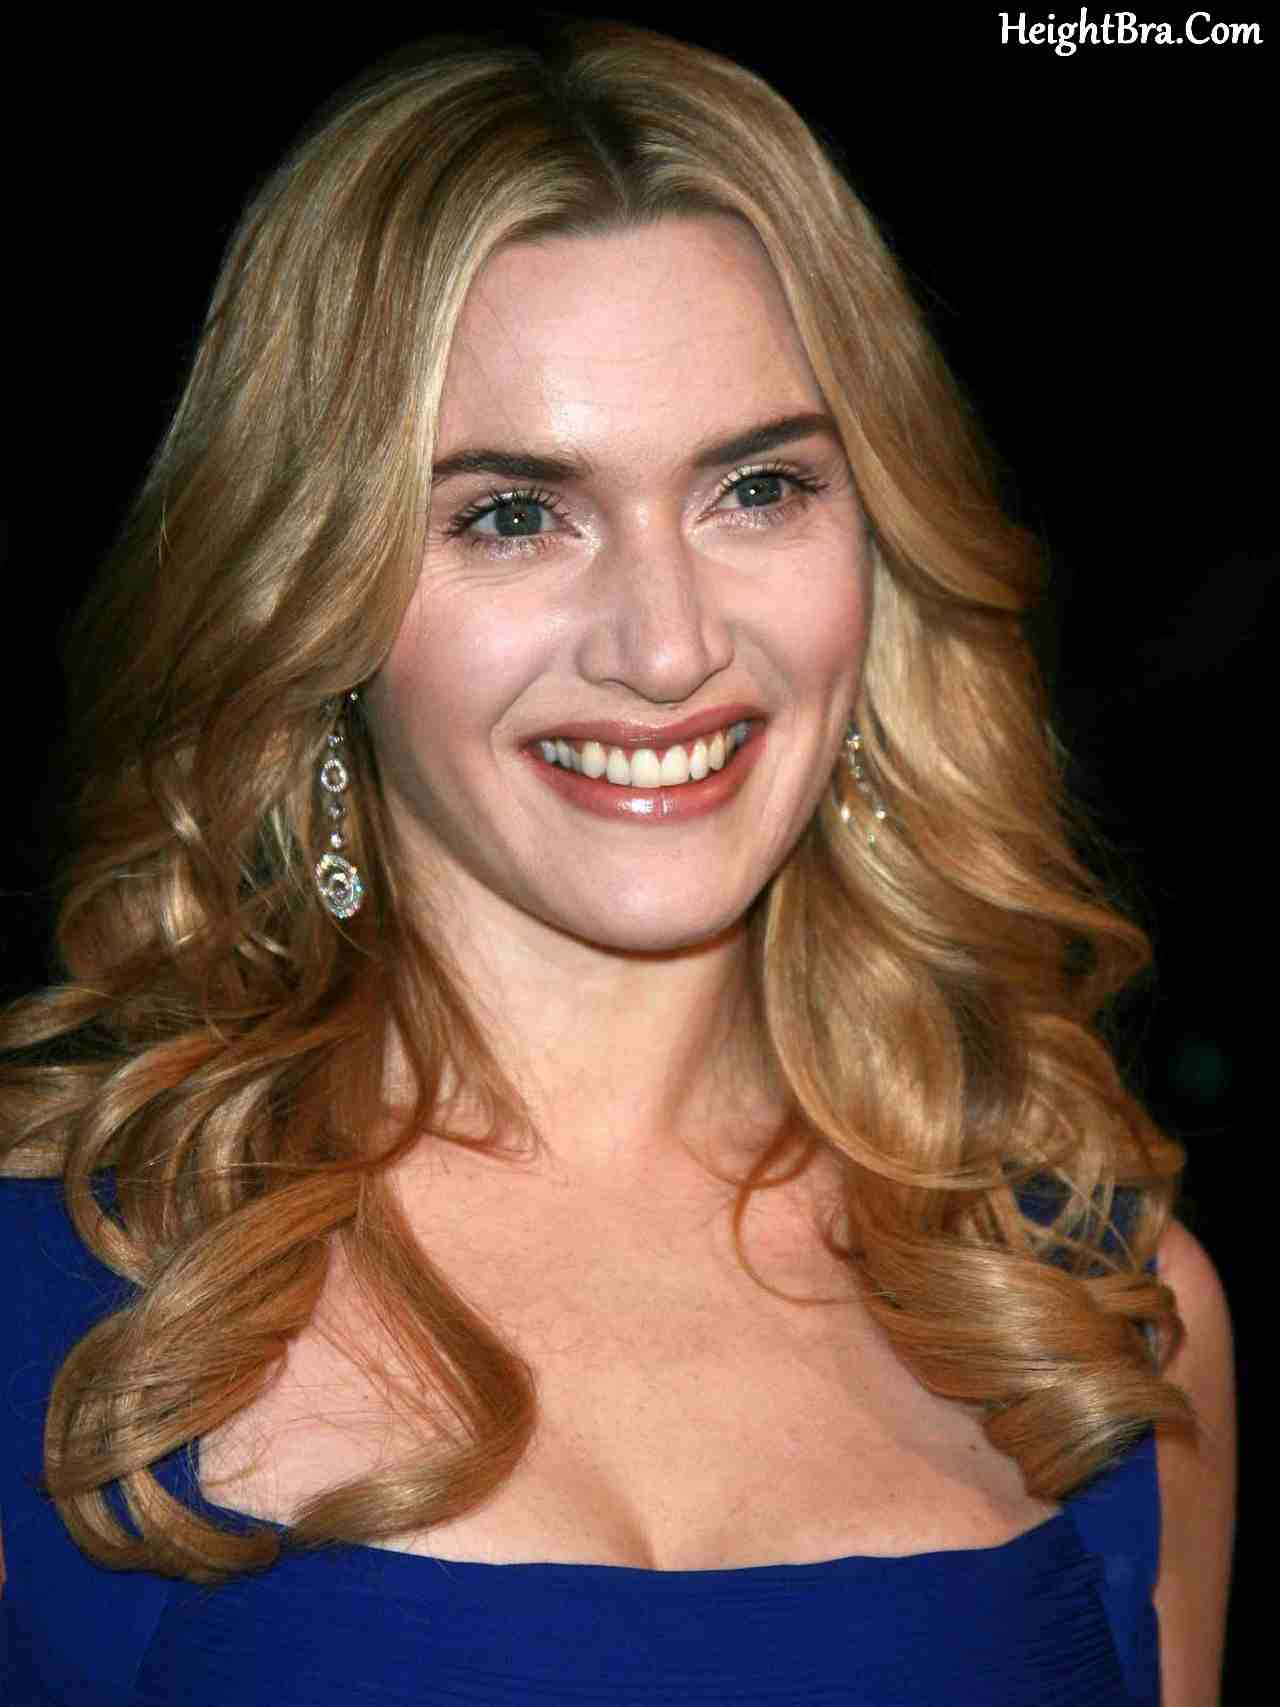 Horoscope Hd Wallpapers Kate Winslet Height Weight Bra Bio Figure Size